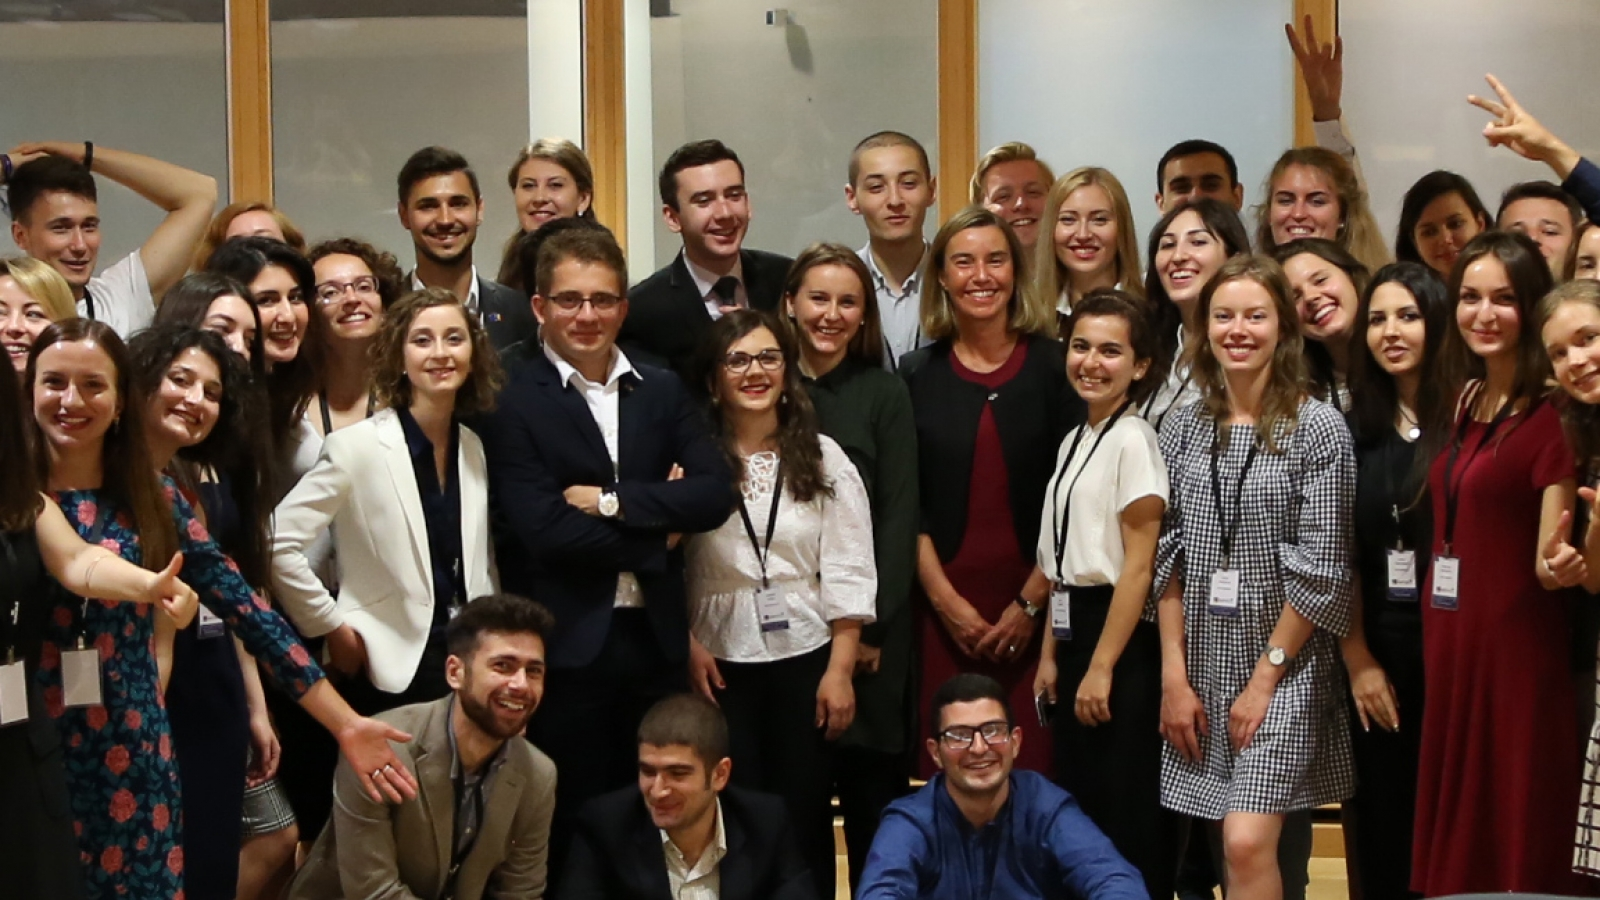 Group photo after interesting discussion with Federica Mogherini